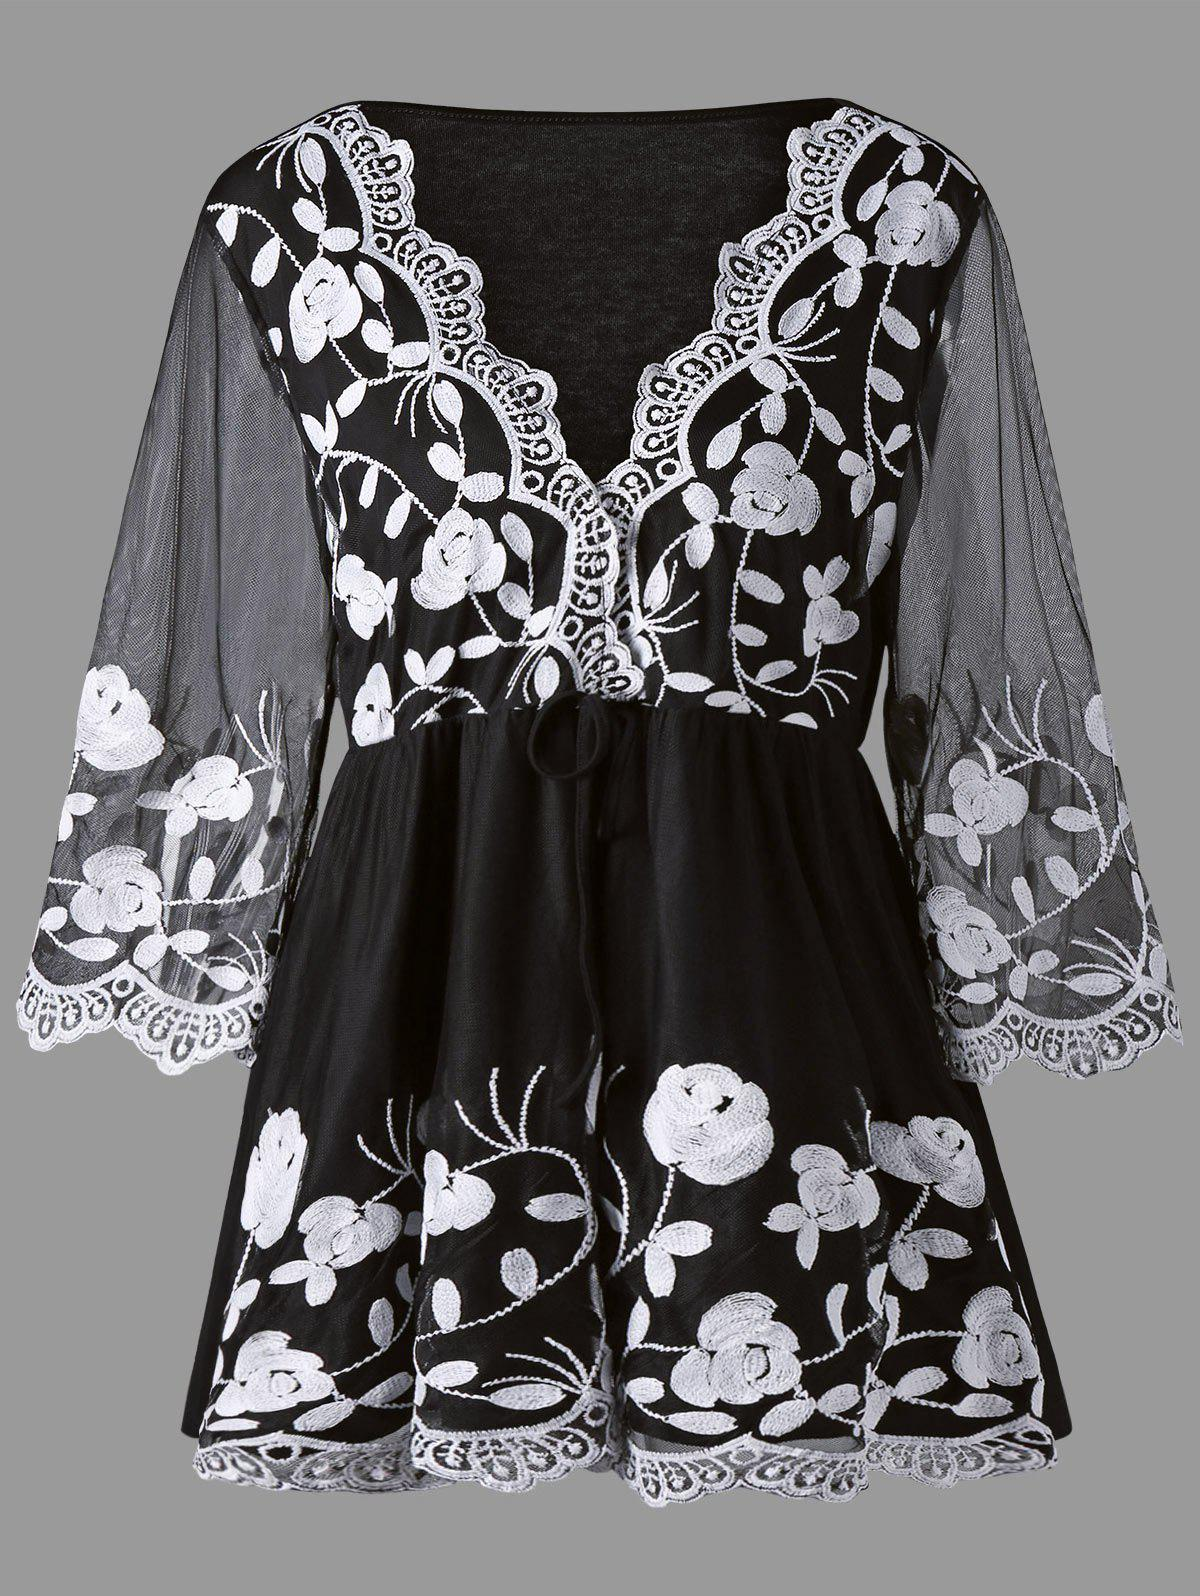 Plus Size Lace Panel Floral Embroidered TopWOMEN<br><br>Size: 2XL; Color: WHITE AND BLACK; Material: Lace,Polyester; Shirt Length: Long; Sleeve Length: Three Quarter; Collar: Plunging Neck; Style: Fashion; Season: Fall; Embellishment: Embroidery,Lace,Panel; Pattern Type: Floral; Weight: 0.3700kg; Package Contents: 1 x Blouse;